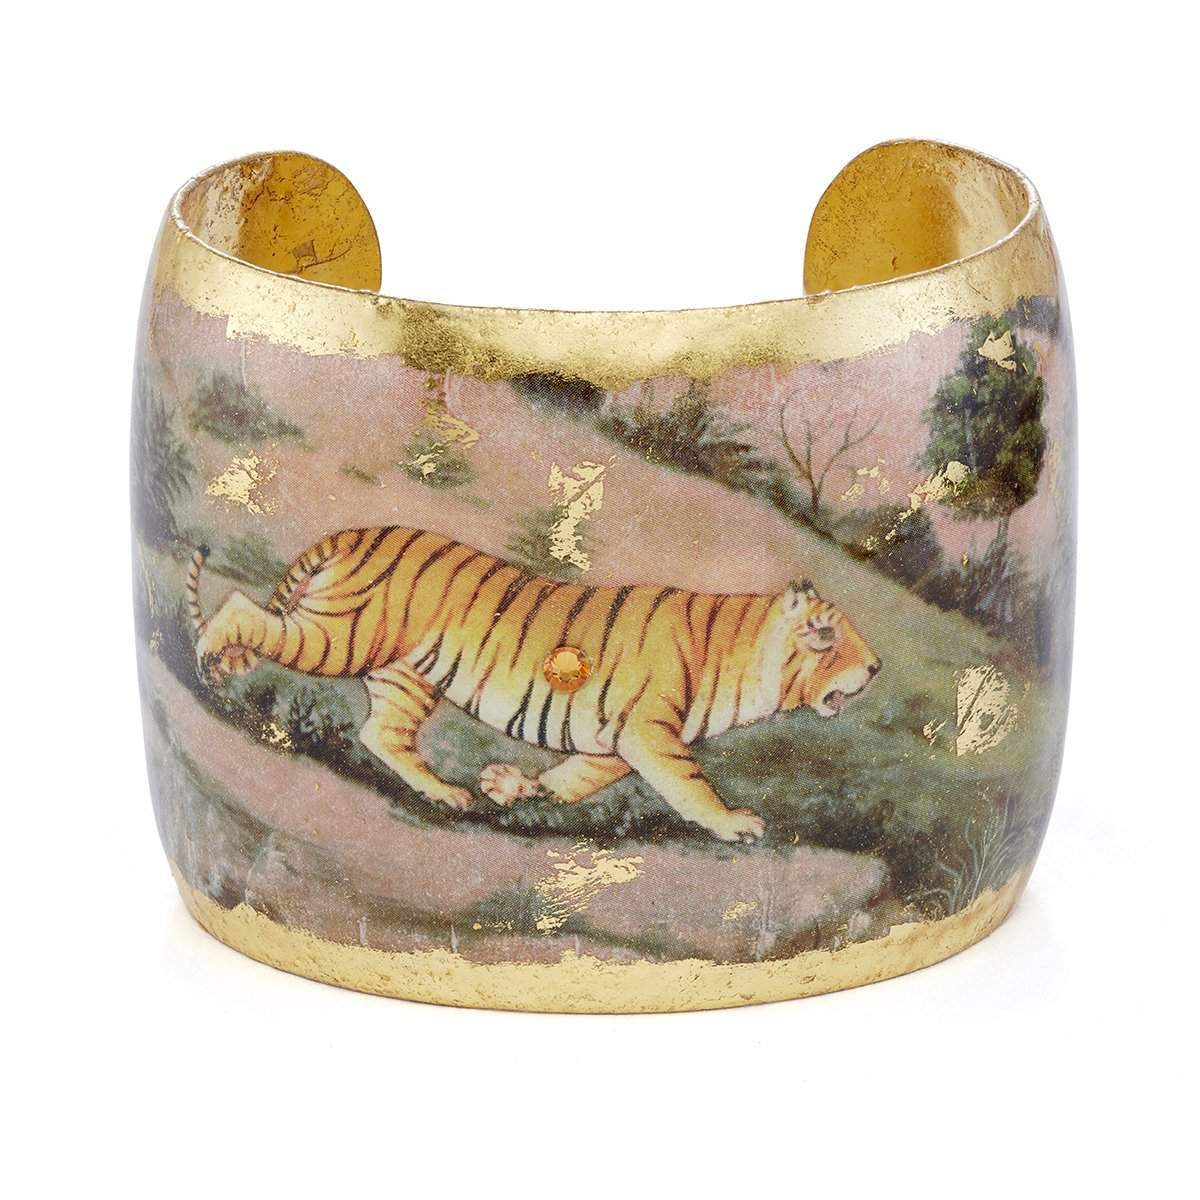 "Jaipur Tiger 2"" Gold Cuff - VO1069-Evocateur-Renee Taylor Gallery"